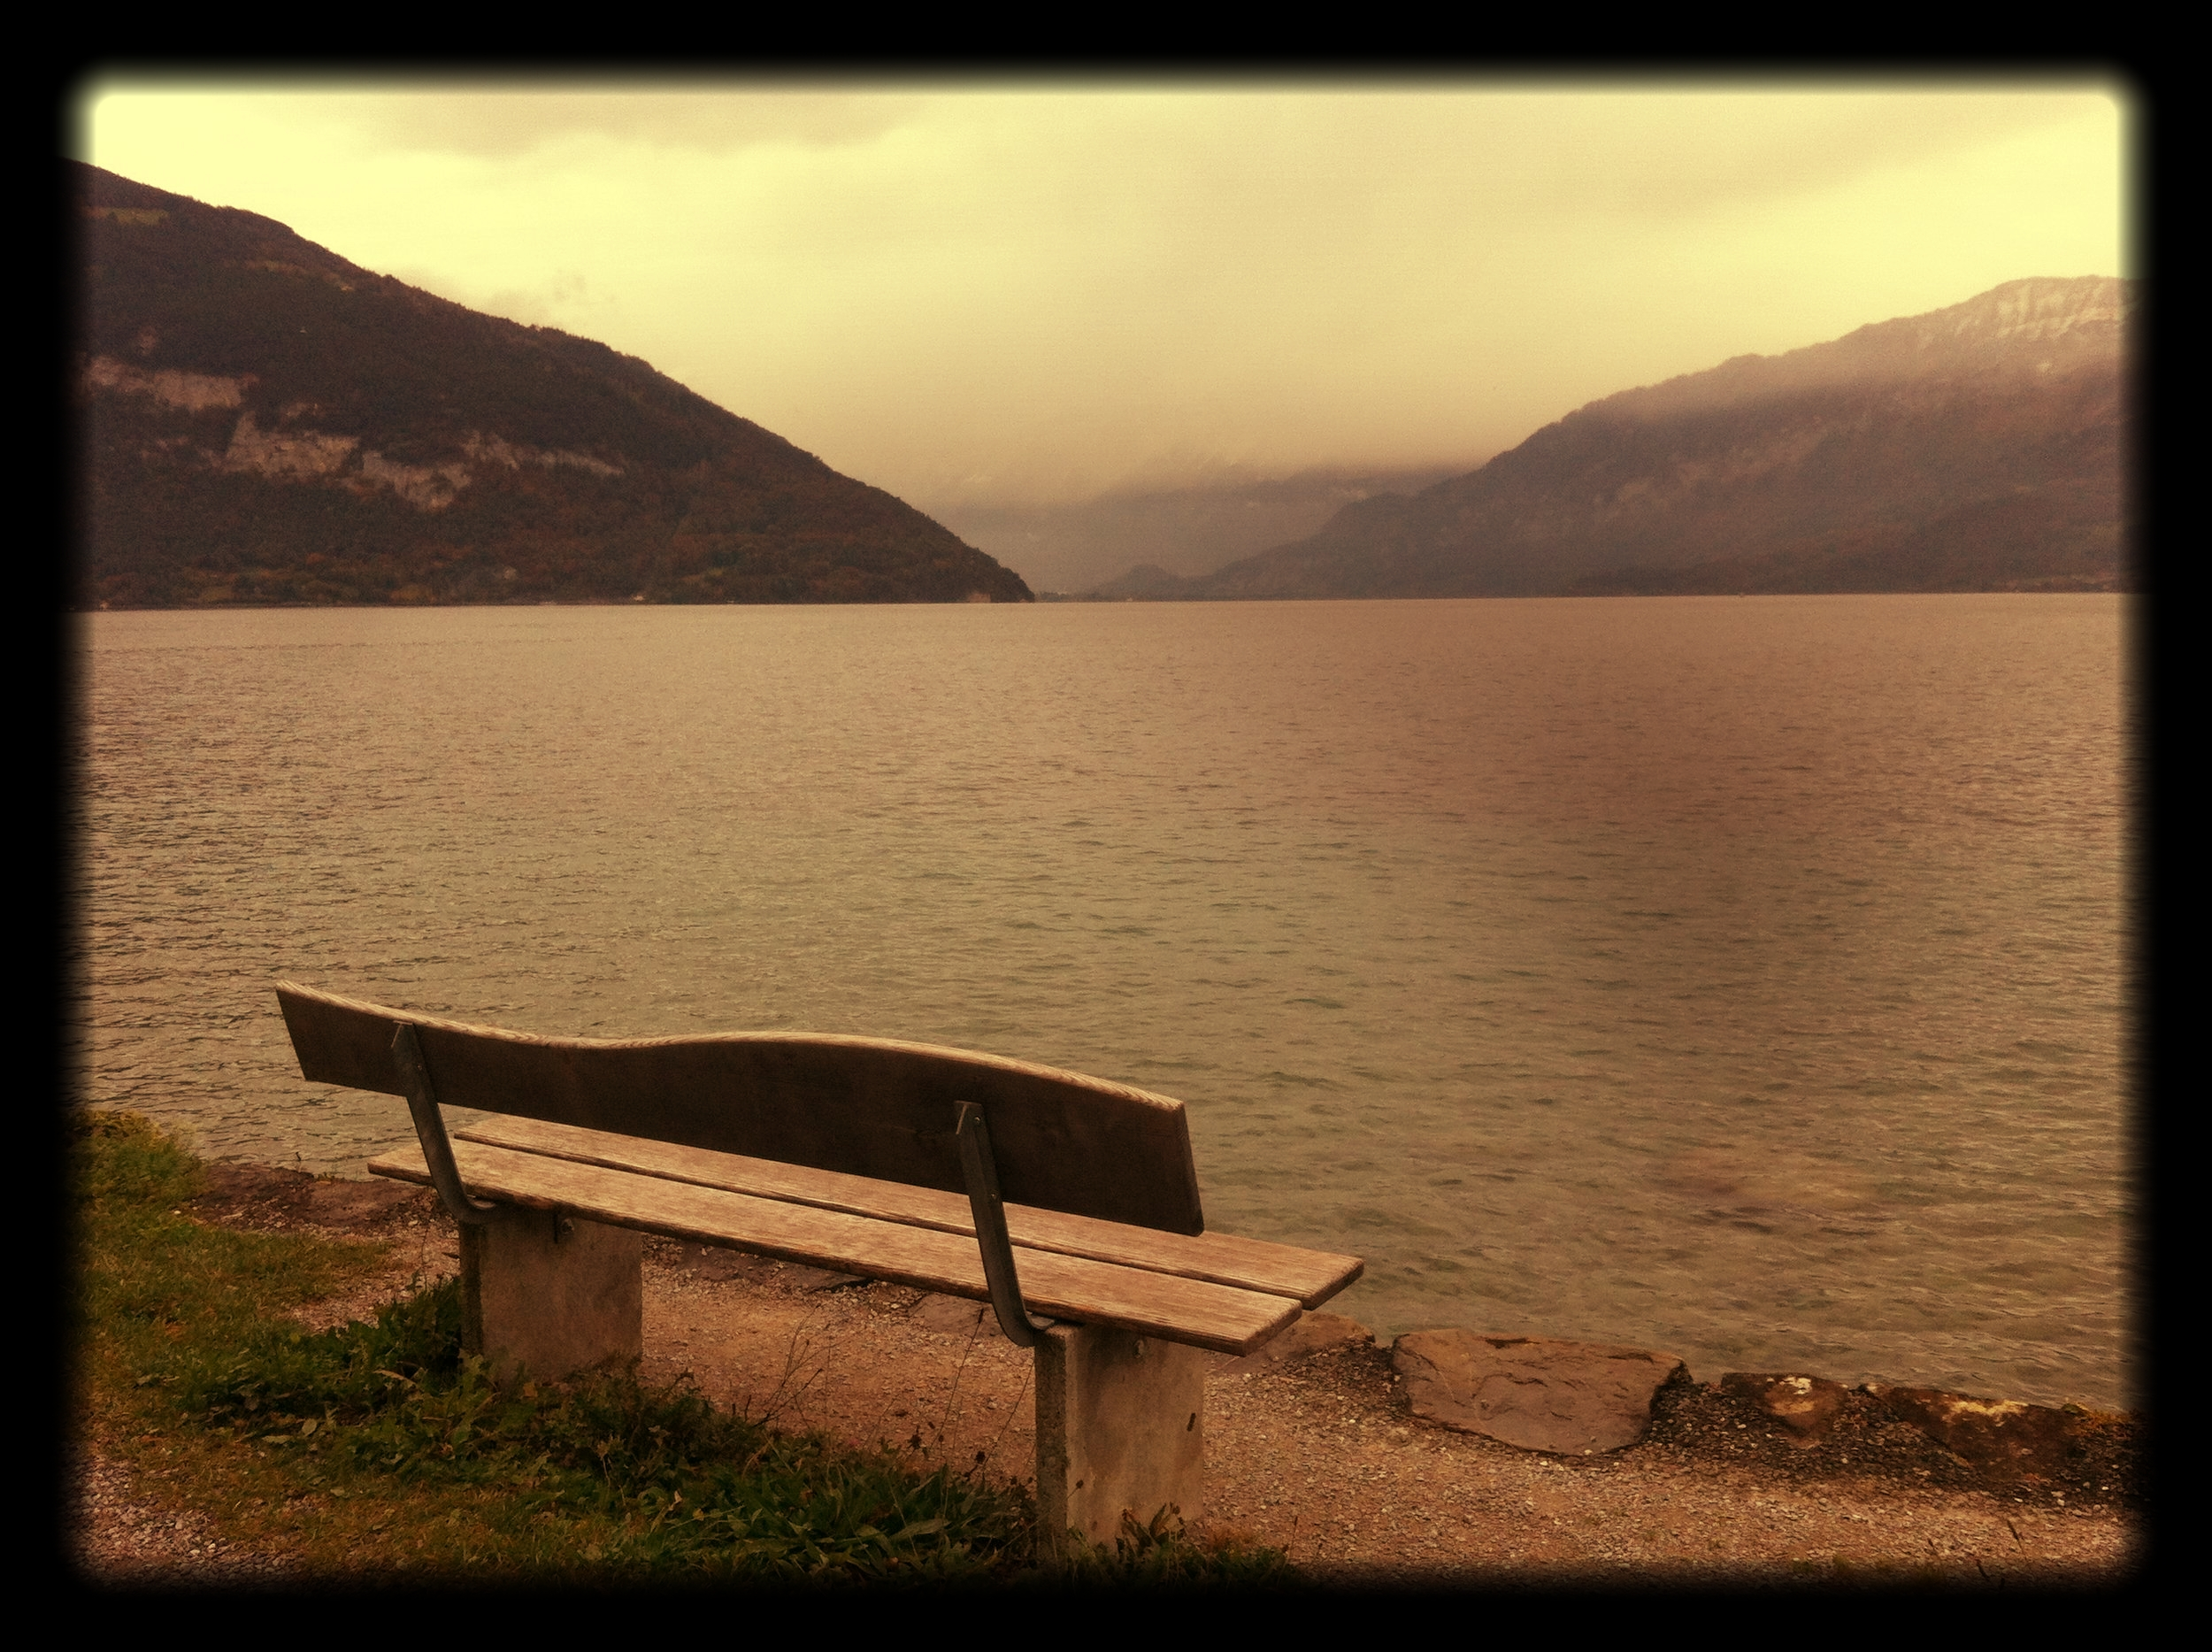 A_bench_on_a_lake_with_Mountains